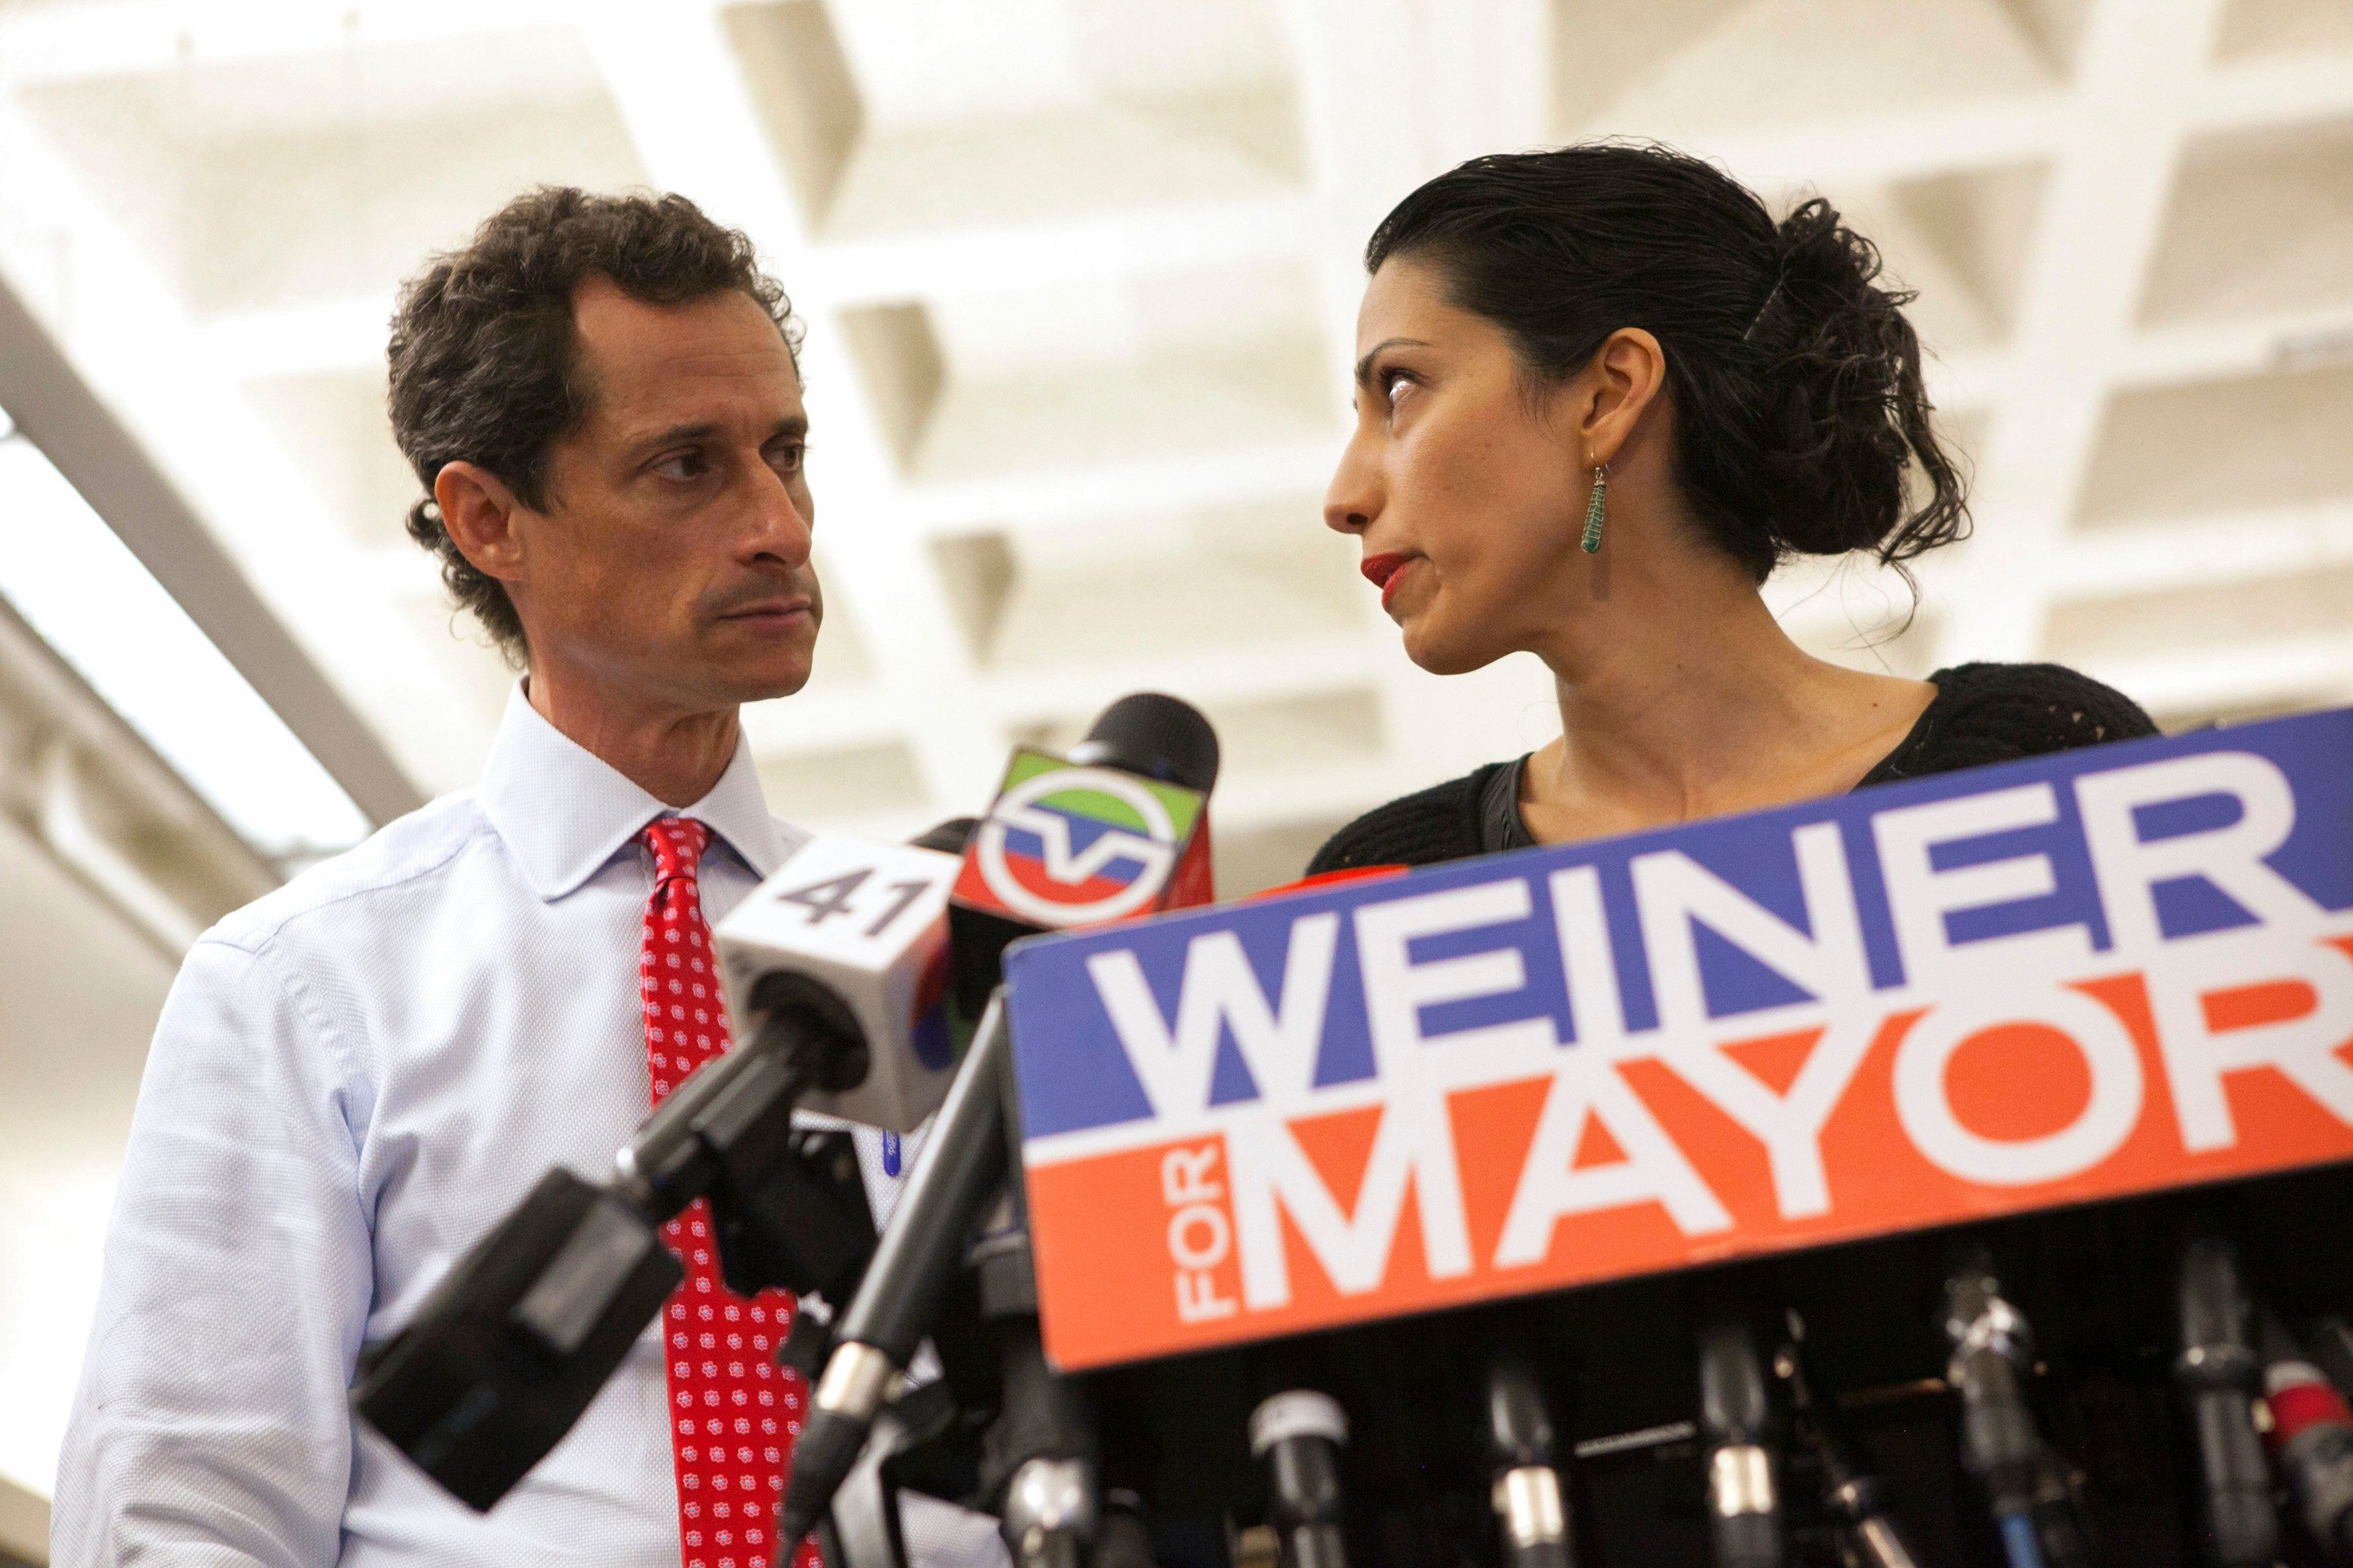 New York mayoral candidate Anthony Weiner and his wife Huma Abedin attend a news conference in New York, U.S. on July 23, 2013.  REUTERS/Eric Thayer/File Photo